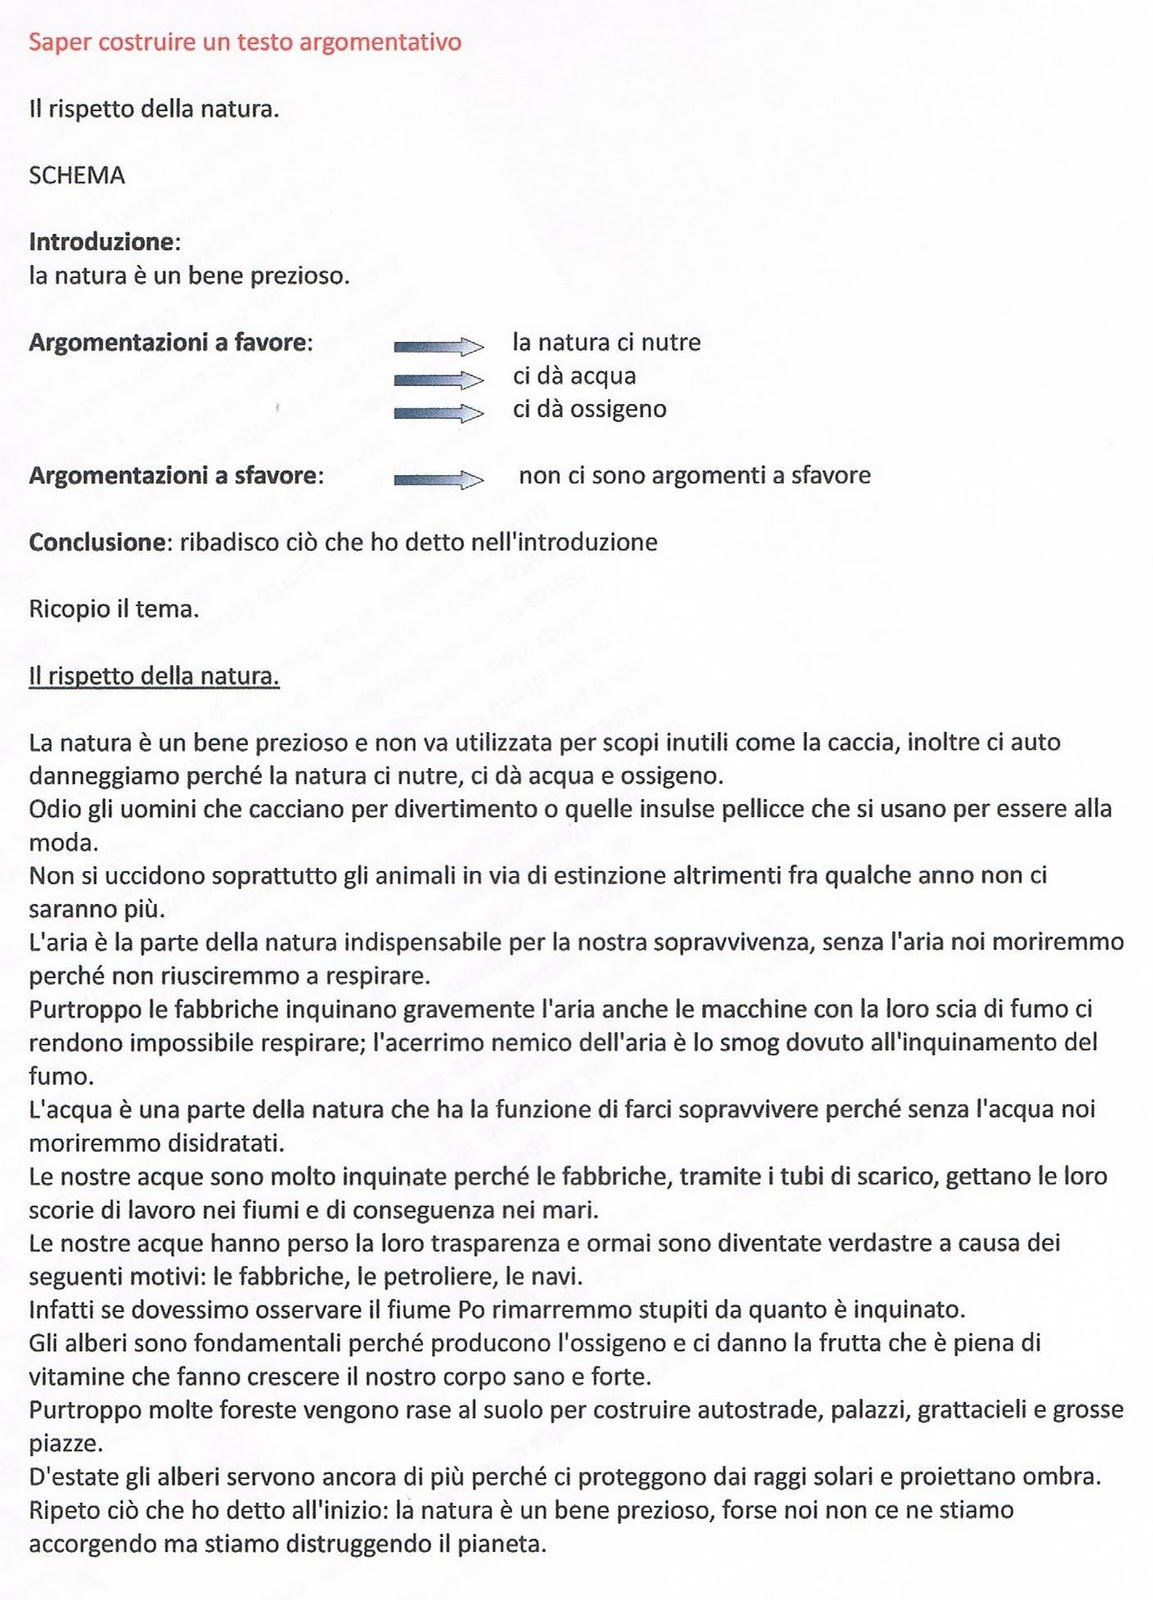 Nuvole di fumo online dating 1